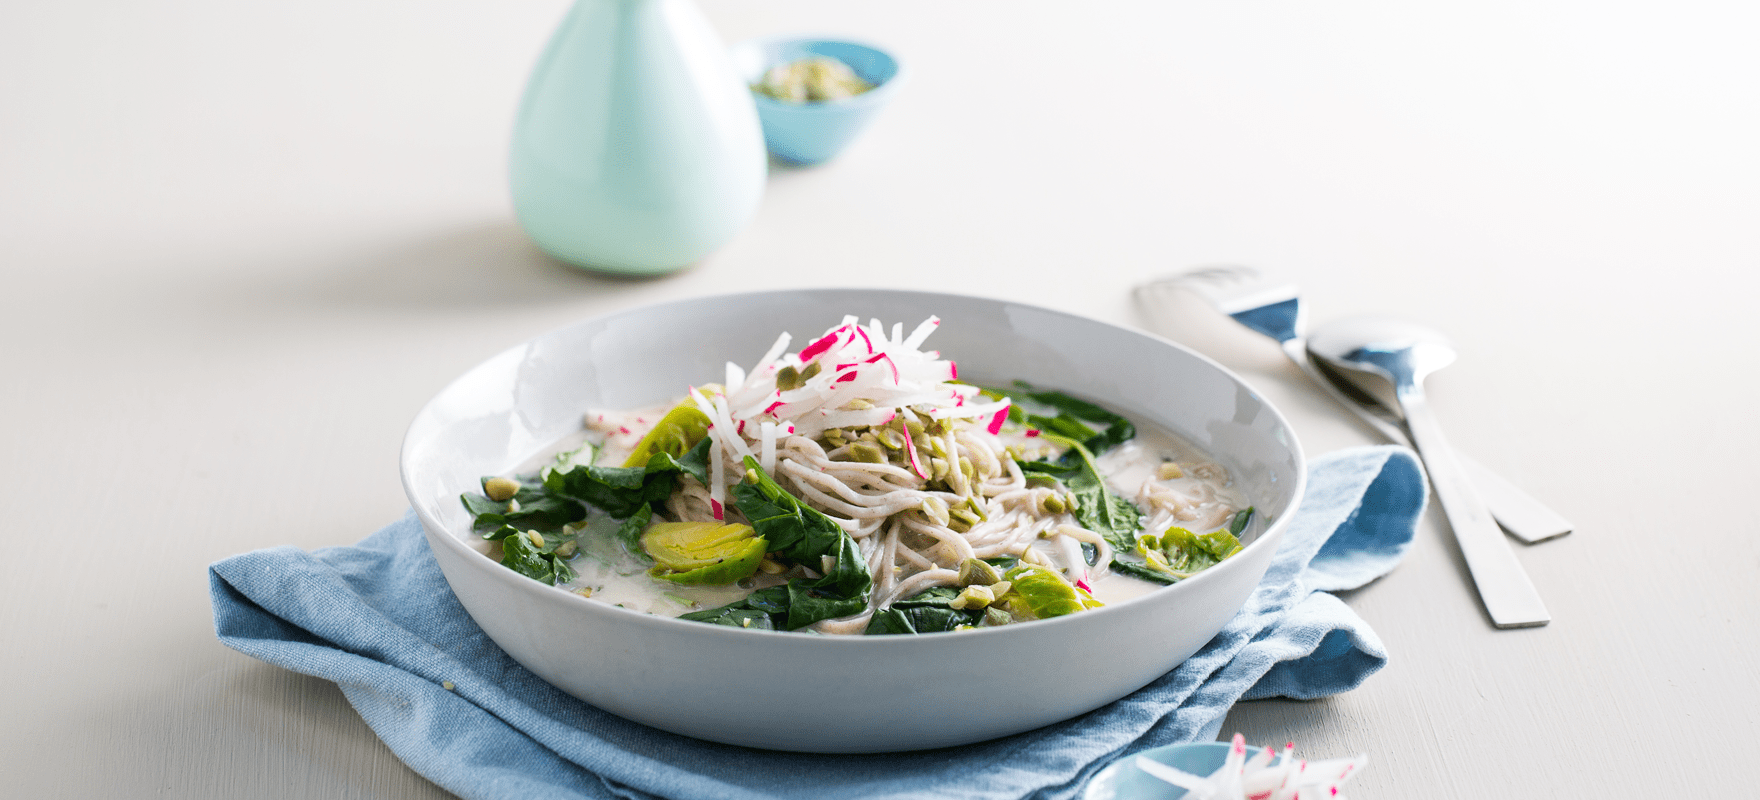 Soba noodle and green vegetable bowl image 1